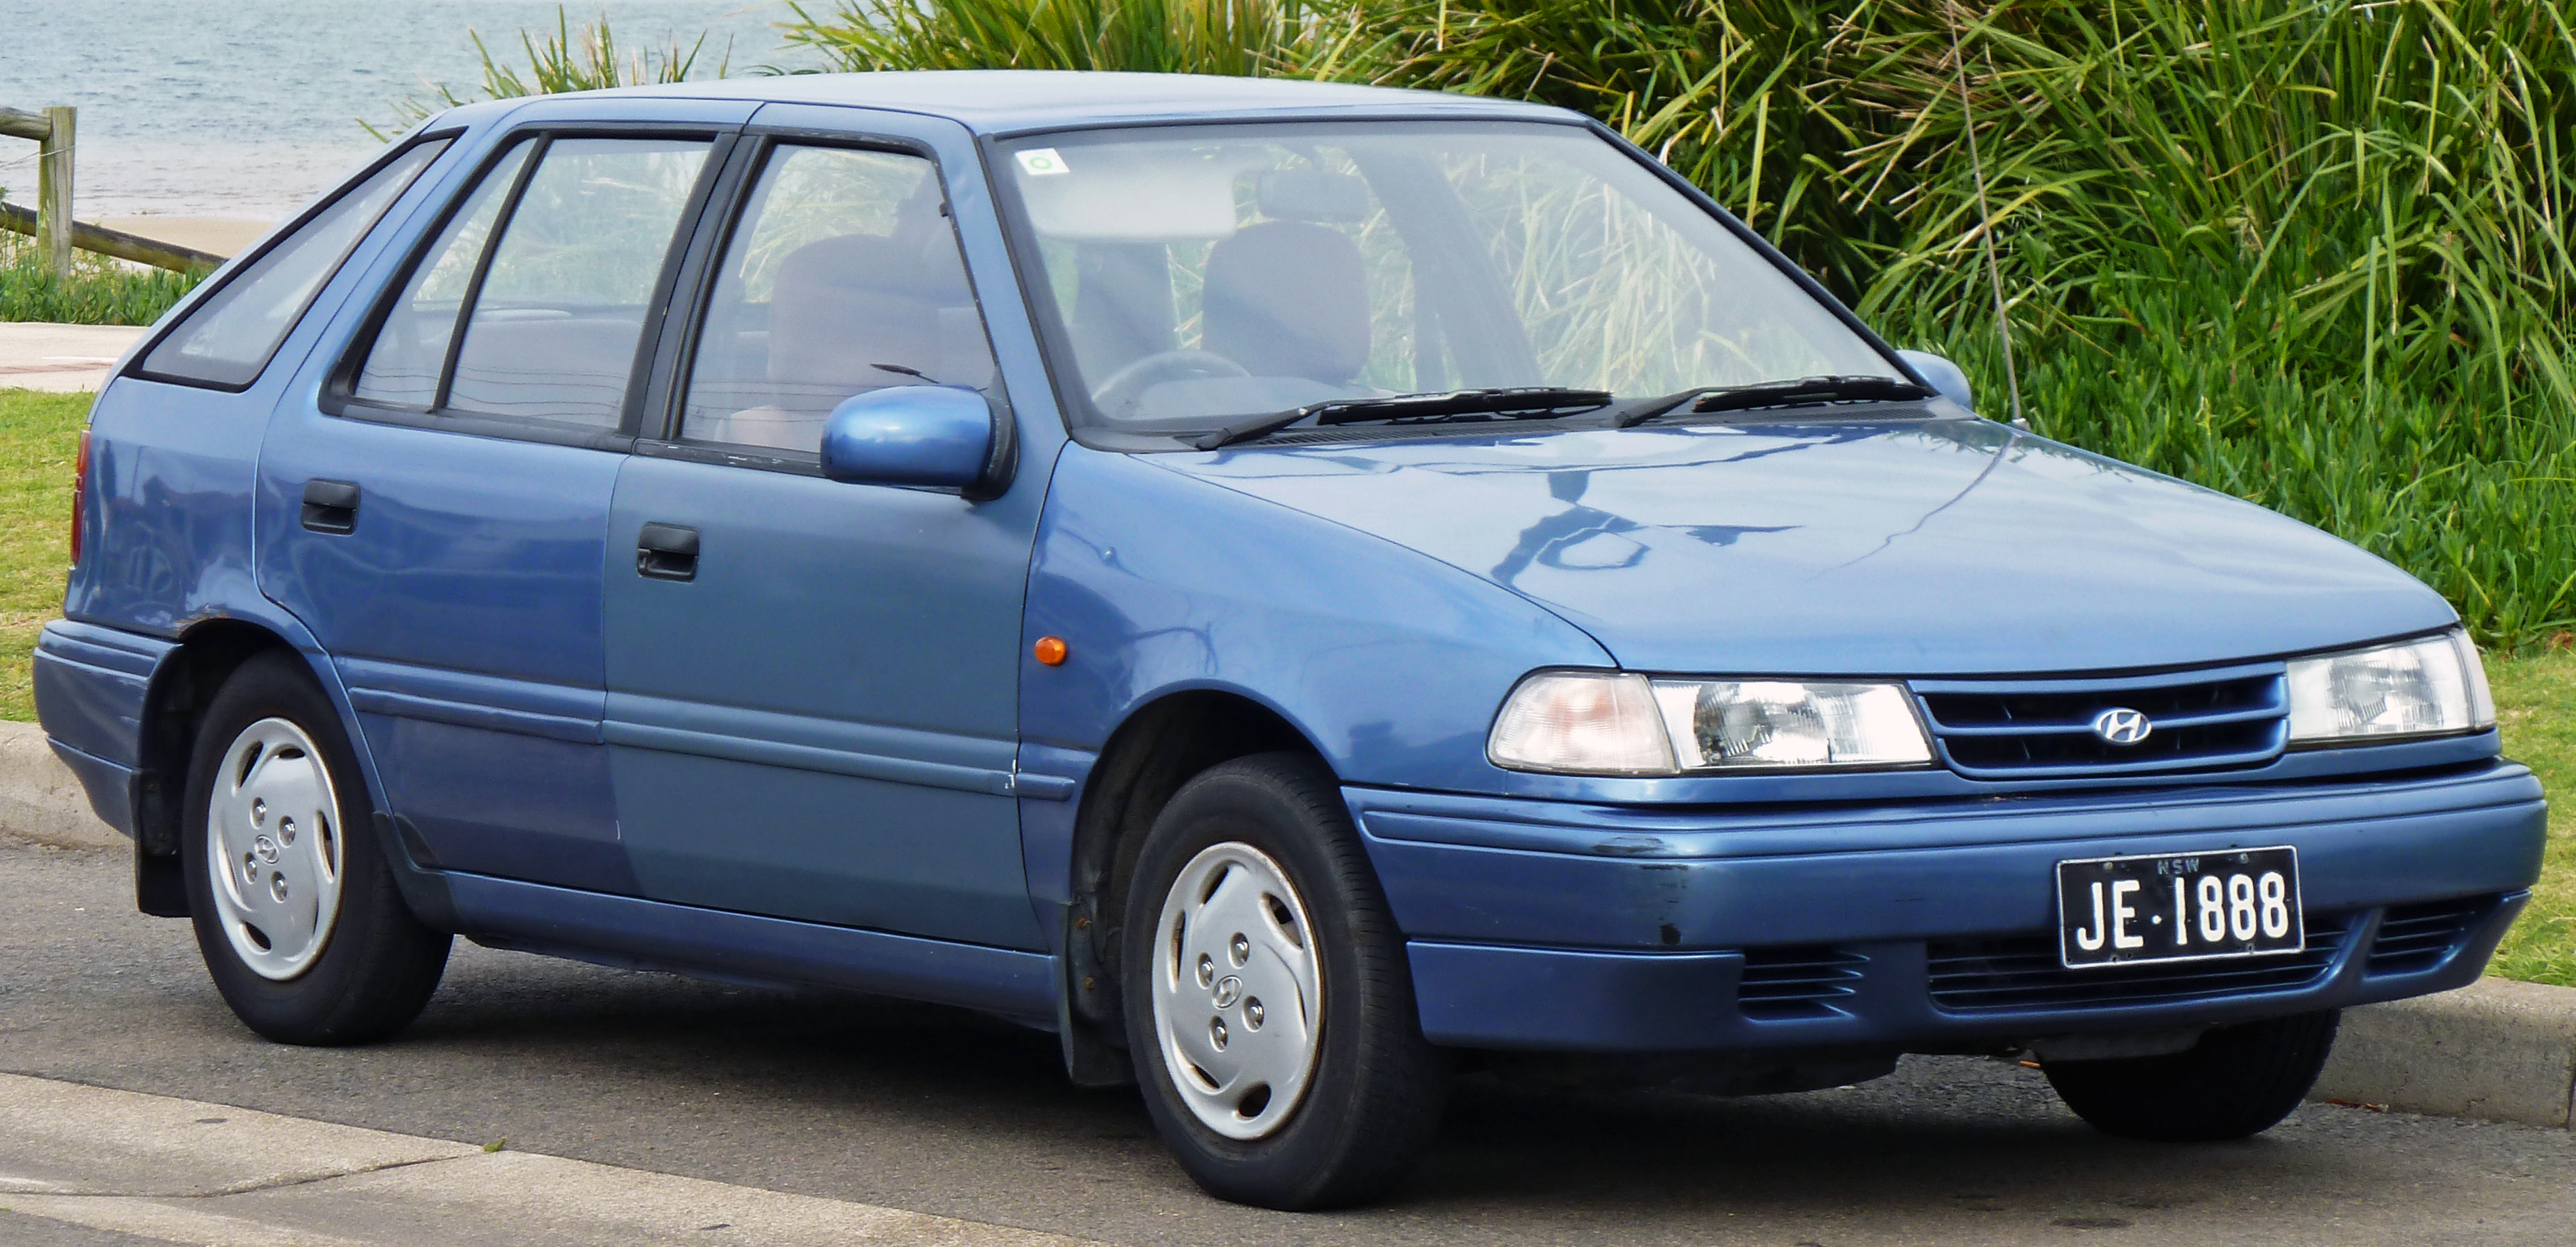 hyundai pony/excel sedan (x-2) 1990 models